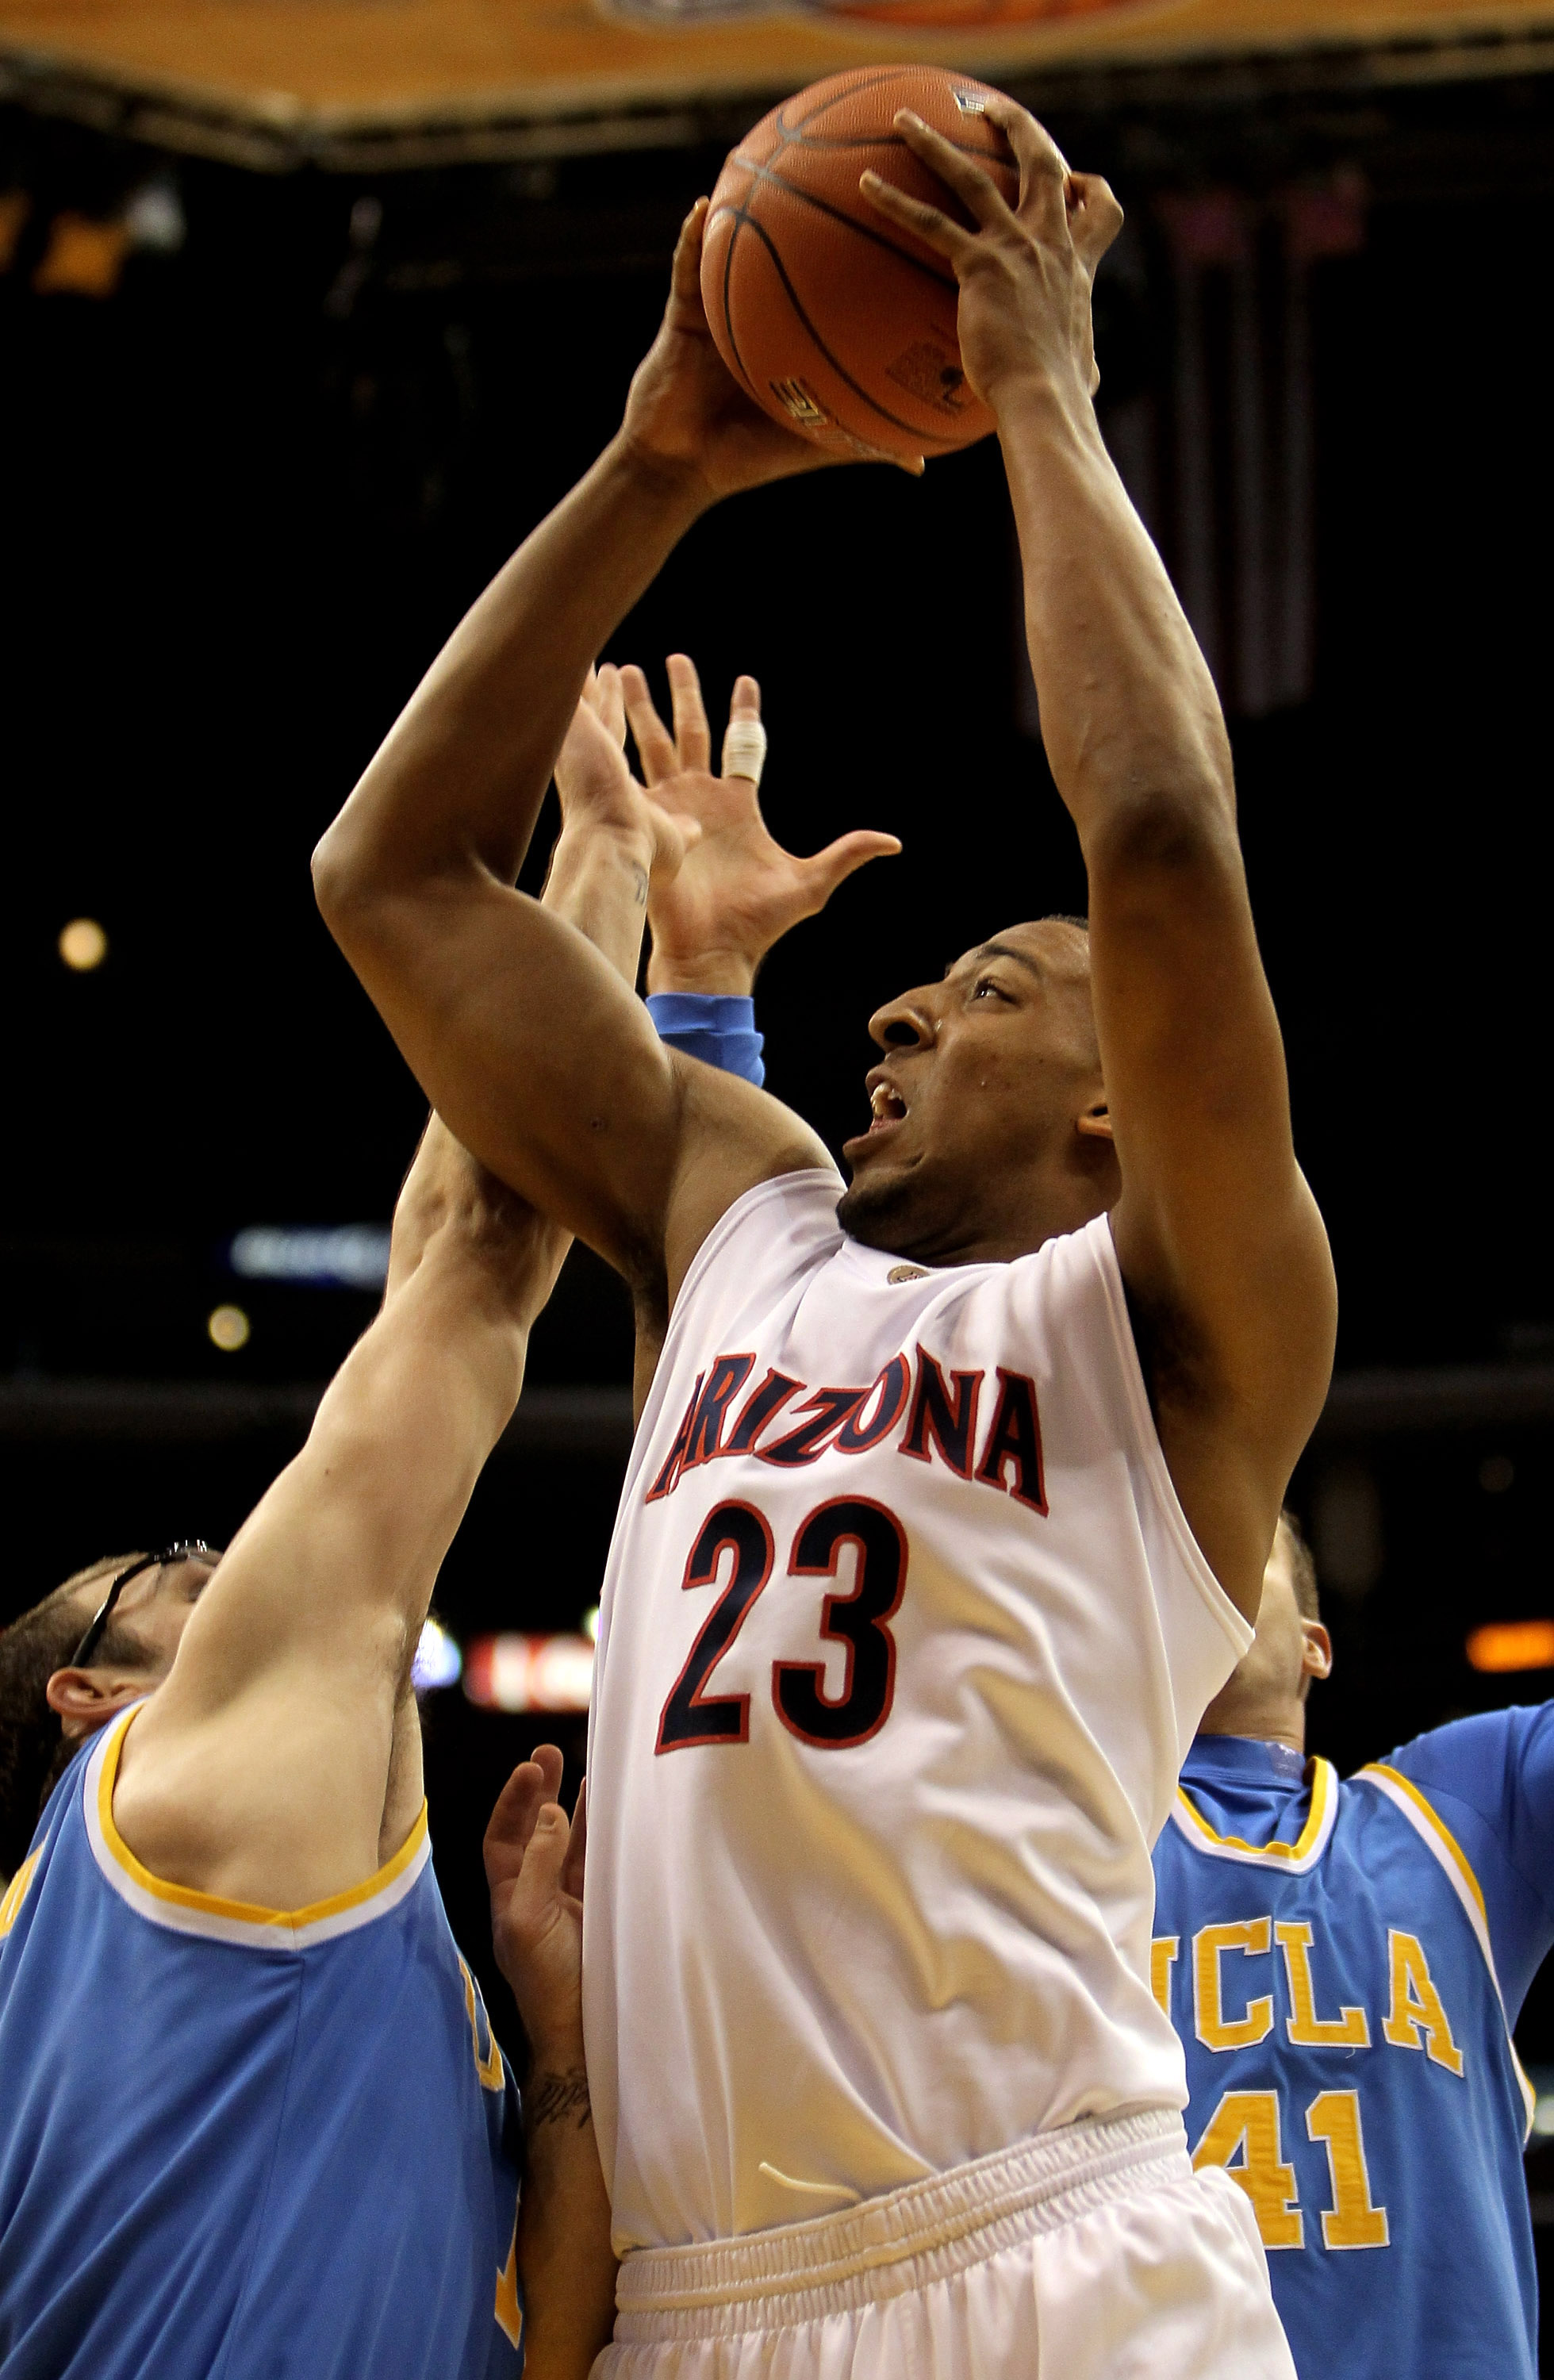 LOS ANGELES - MARCH 11:   Derrick Williams #23 of the Arizona Wildcats shoots over Reeves Nelson #11 of the UCLA Bruins during the quarterfinals of the Pac-10 Basketball Tournament at Staples Center on March 11, 2010 in Los Angeles, California.  (Photo by